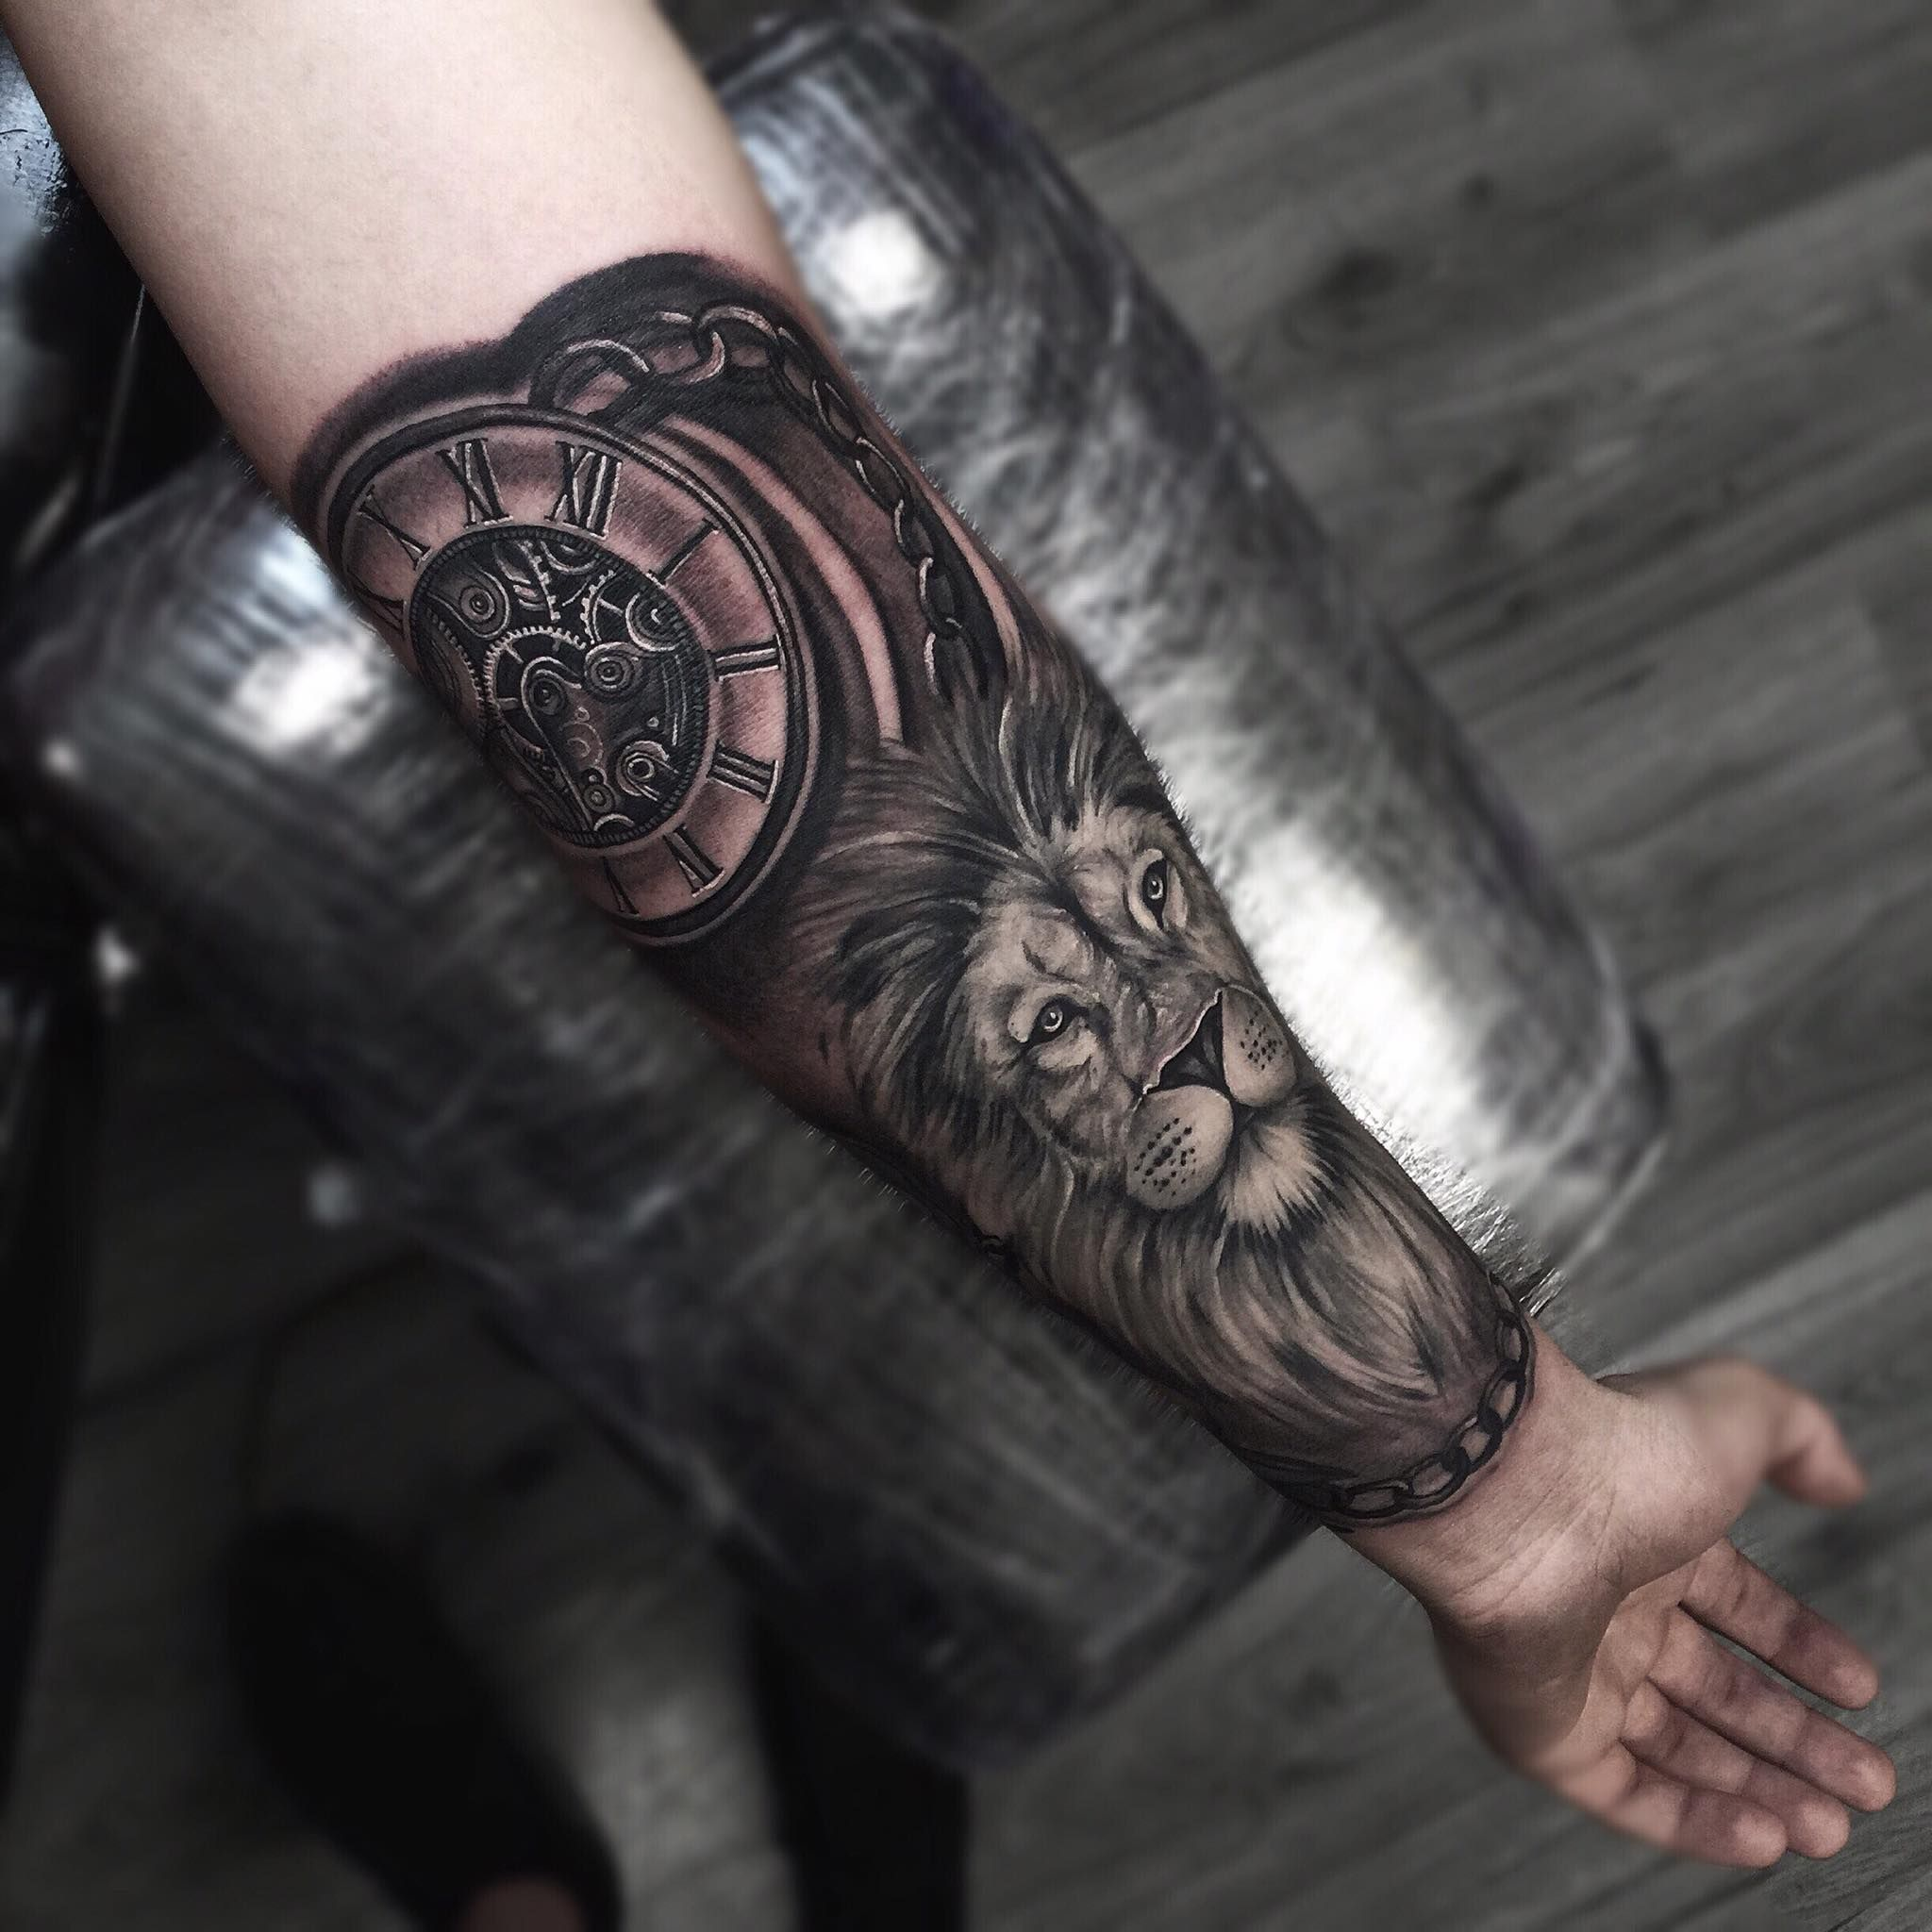 Clock forearm black rose sleeve tattoo - Half Arm Tattoo Lion Tattoo Clock Tattoo Tatuaggio Ingranaggi Tatuaggio Leone